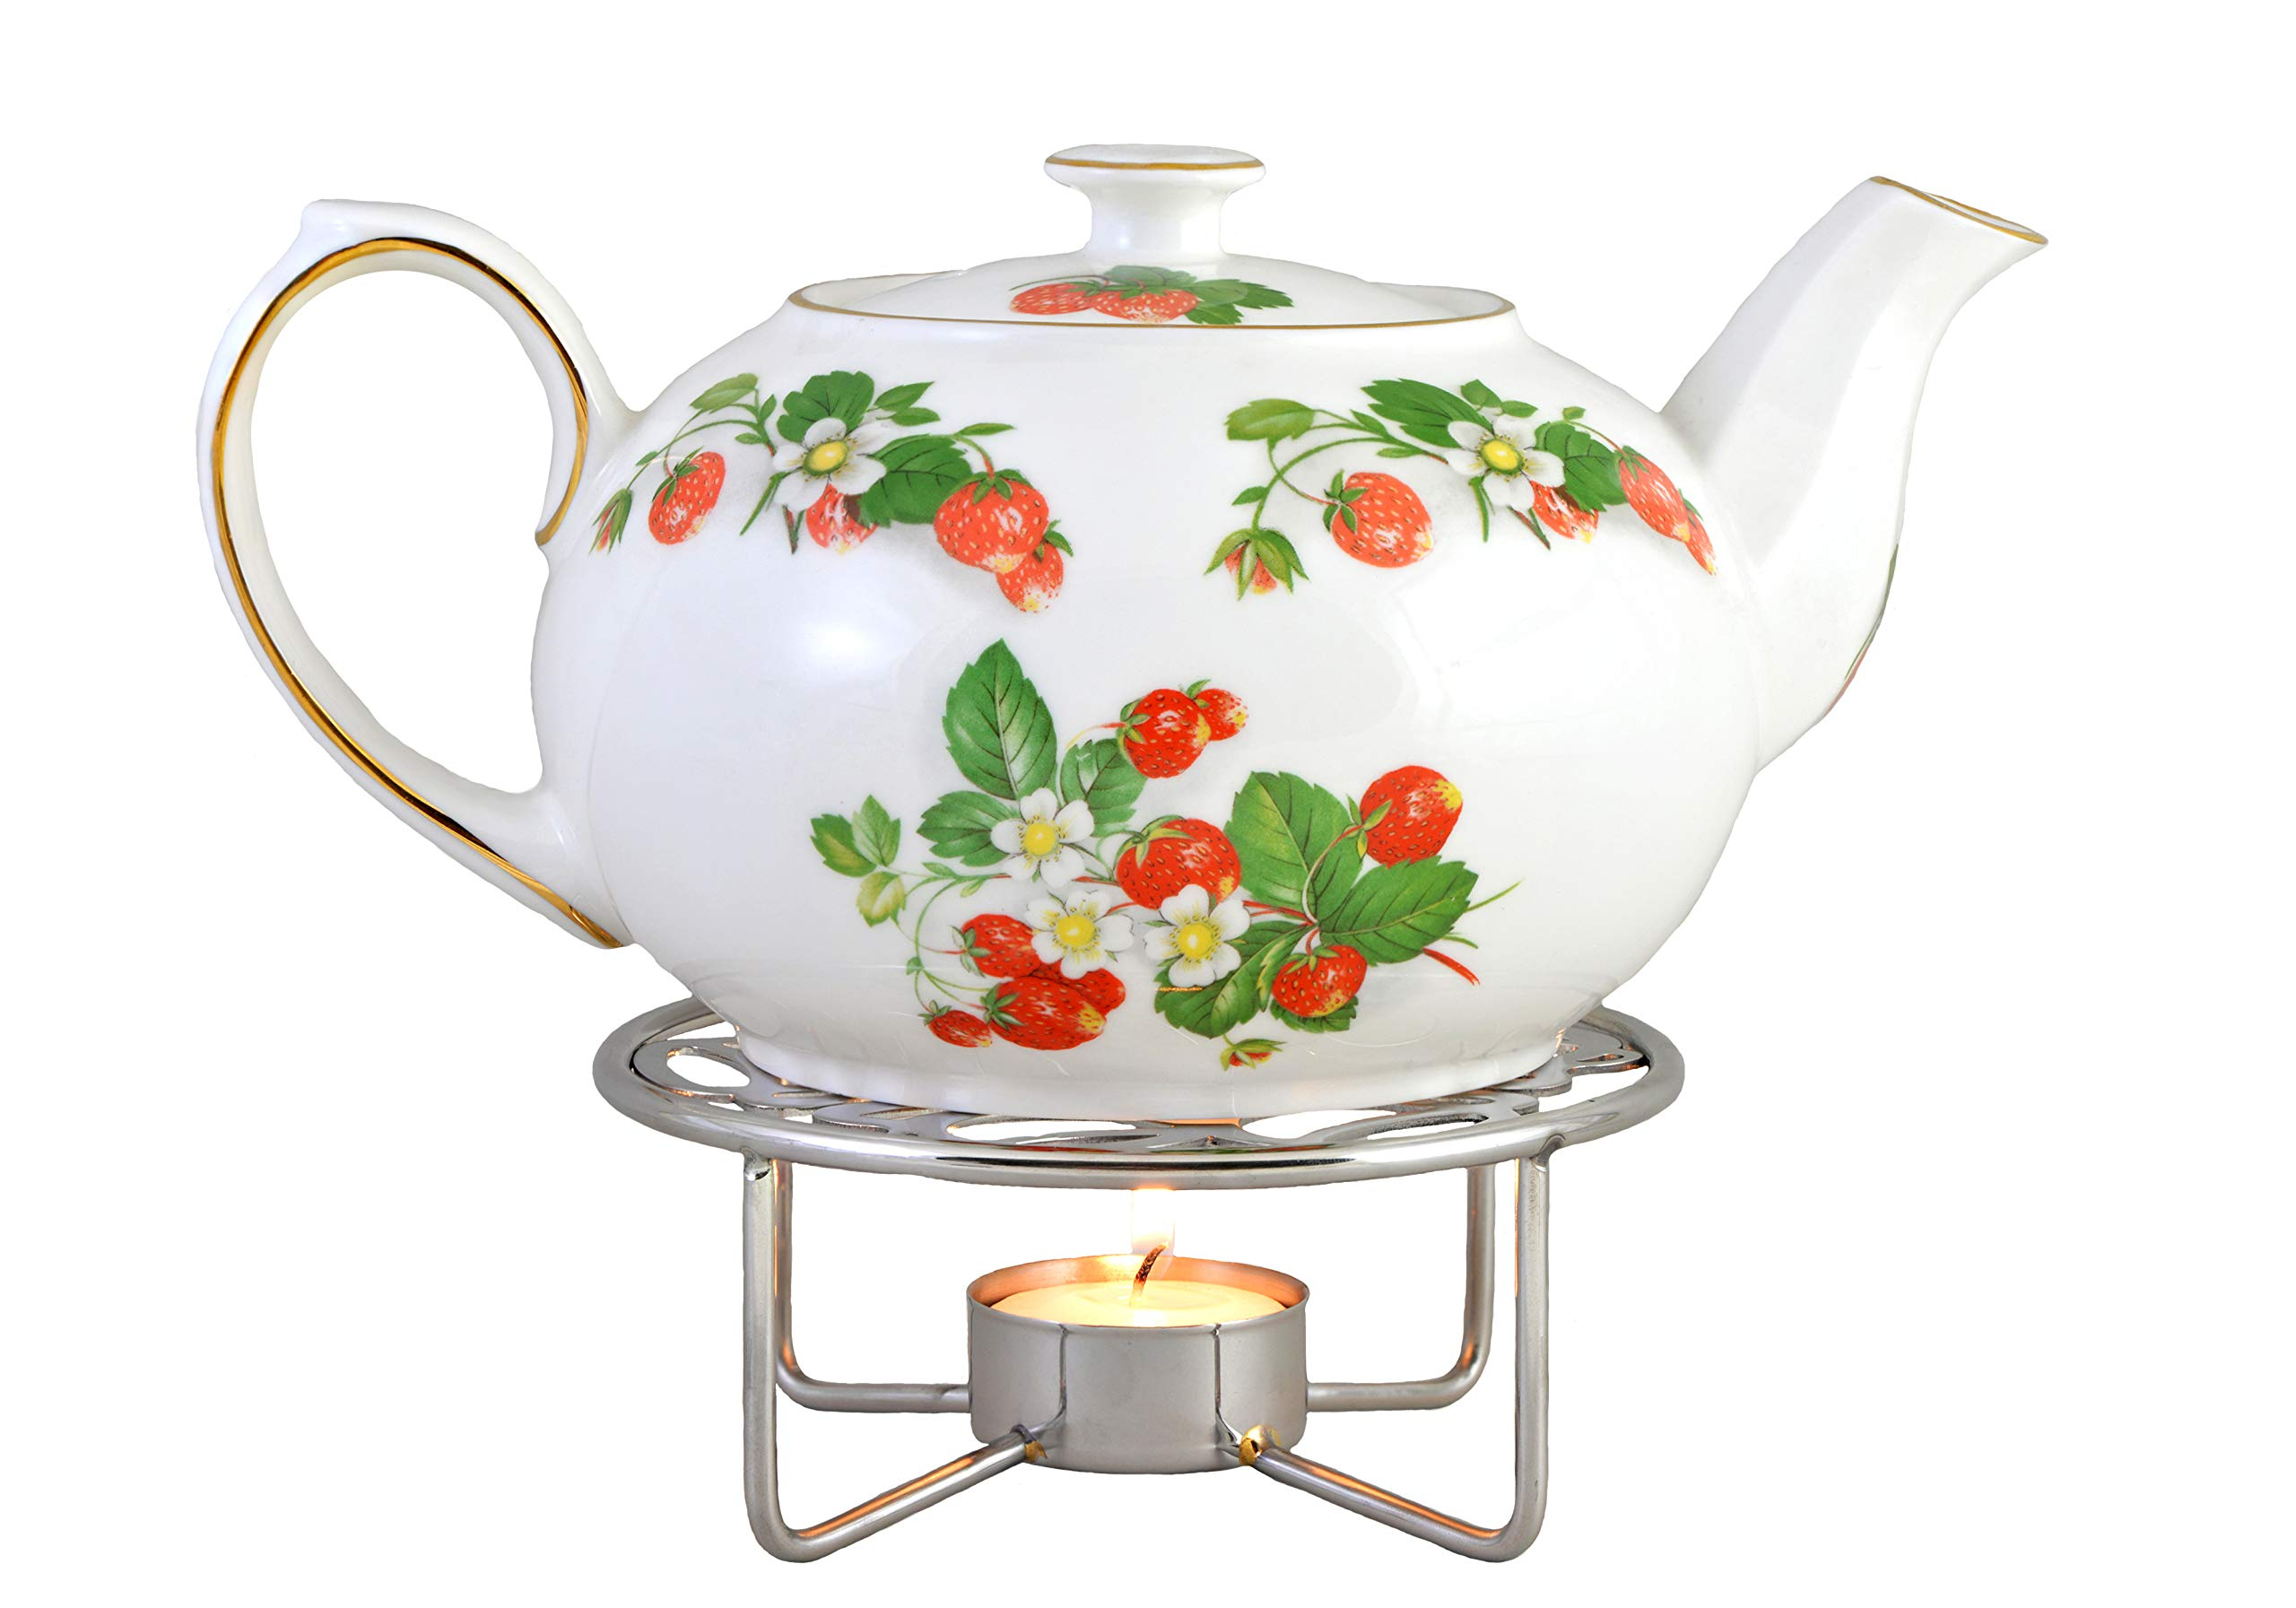 Teapot Warmer - Chrome Plated by Imperial Porcelain Teaware